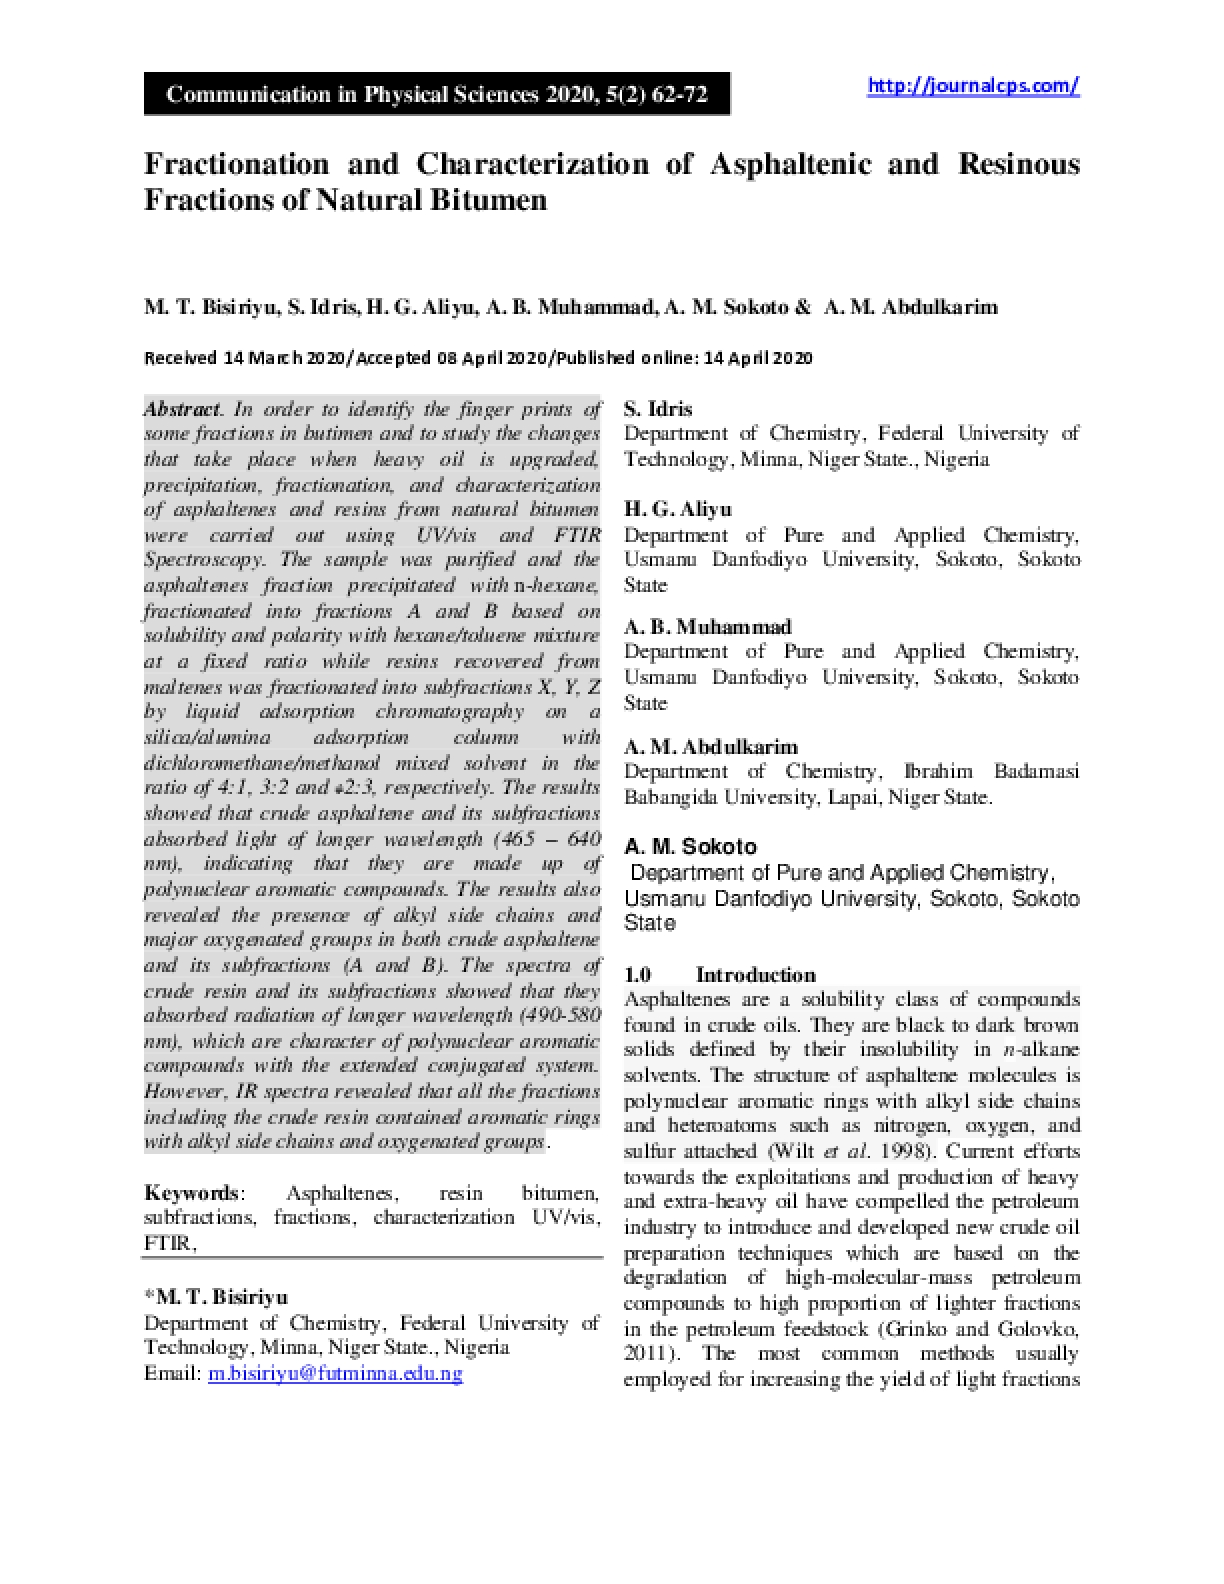 Fractionation and Characterization of Asphaltenic and Resinous Fractions of Natural Bitumen